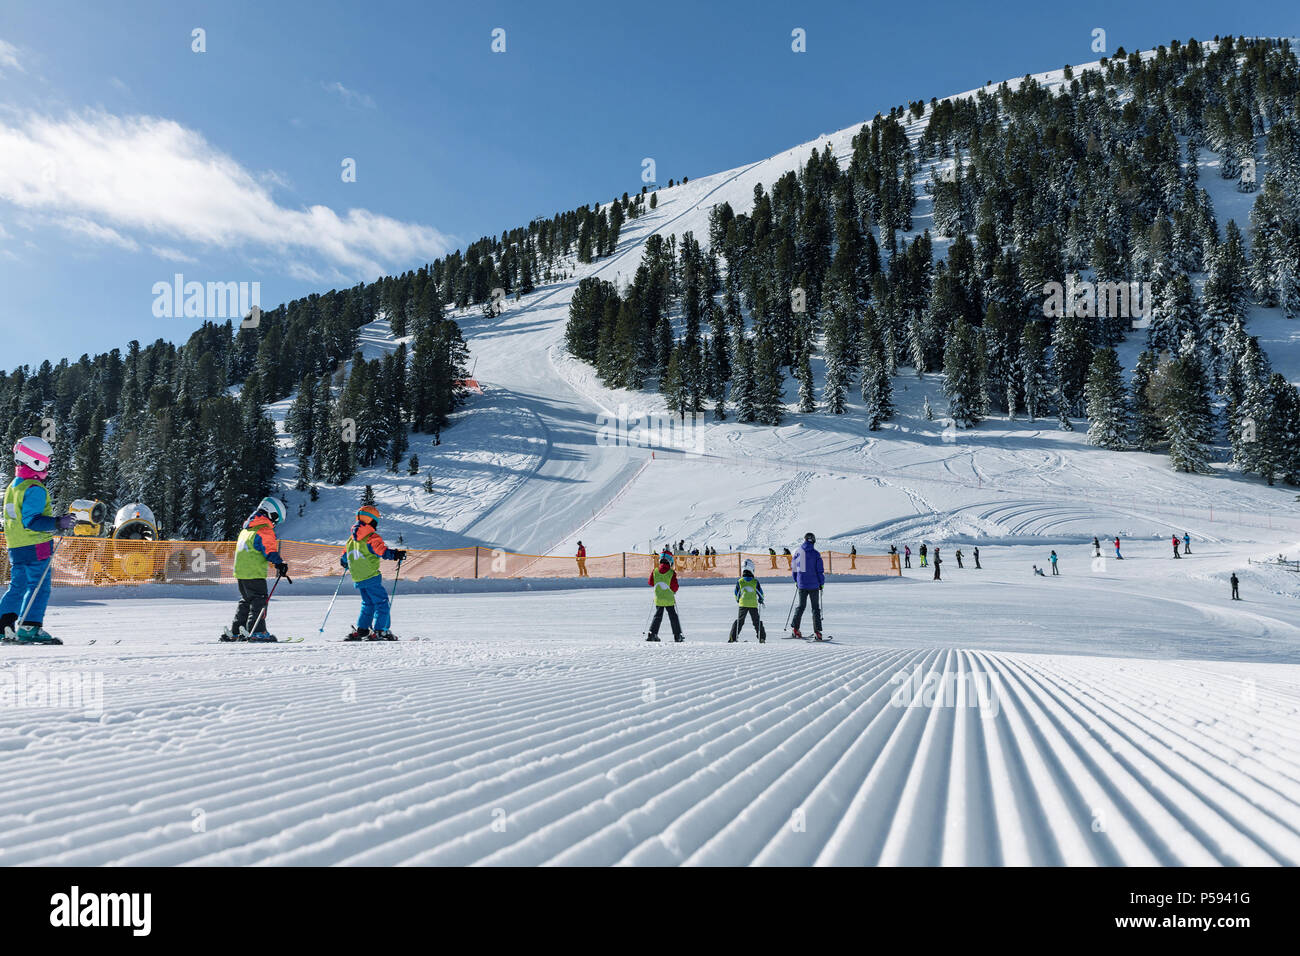 A group of skiers in the background on a modified slopes in the Dolomites on a sunny day. Prepare ski slope. Val di Fiemme - Stock Image